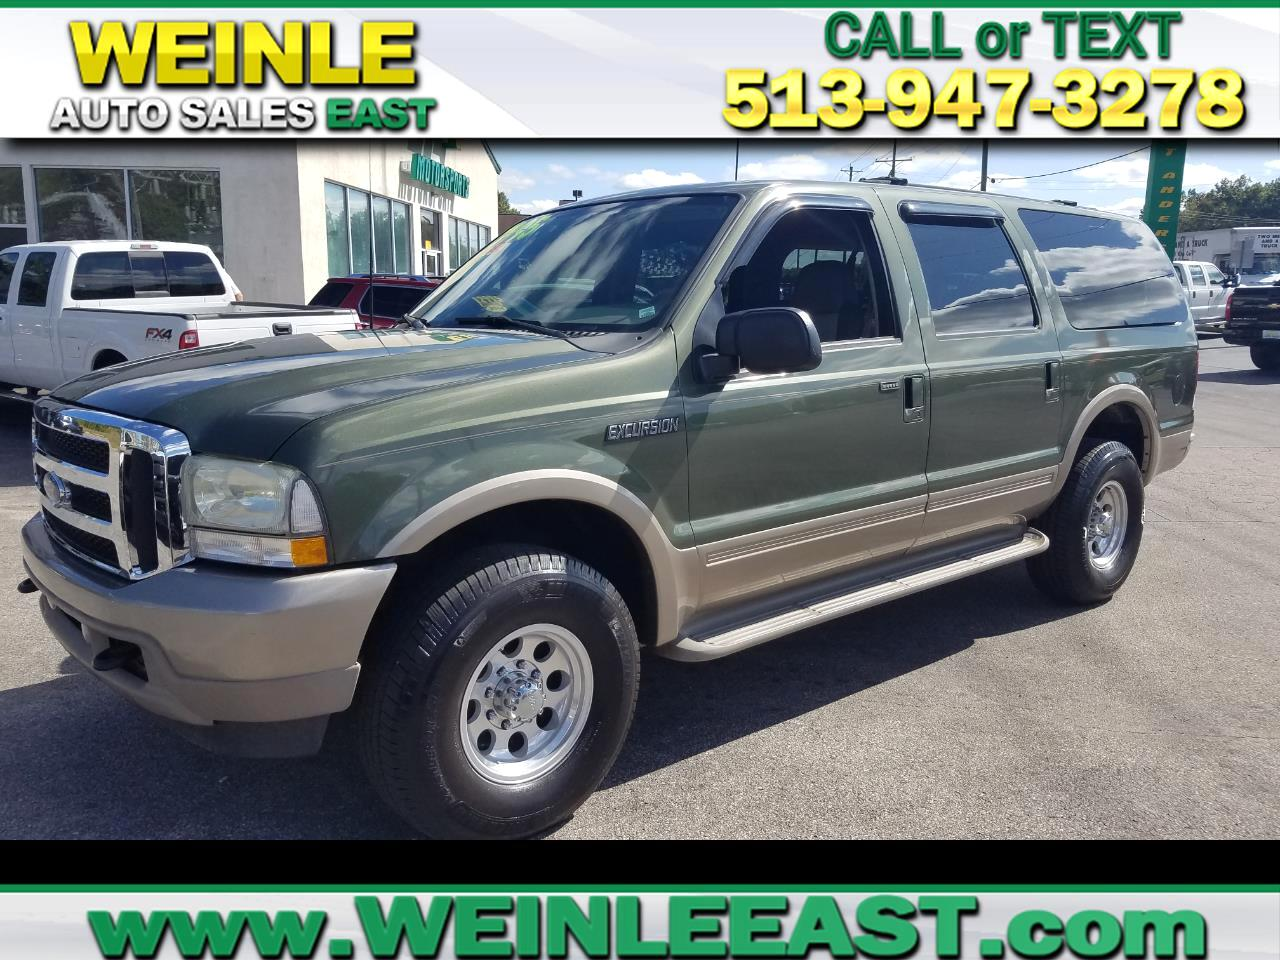 2003 Ford Excursion 137